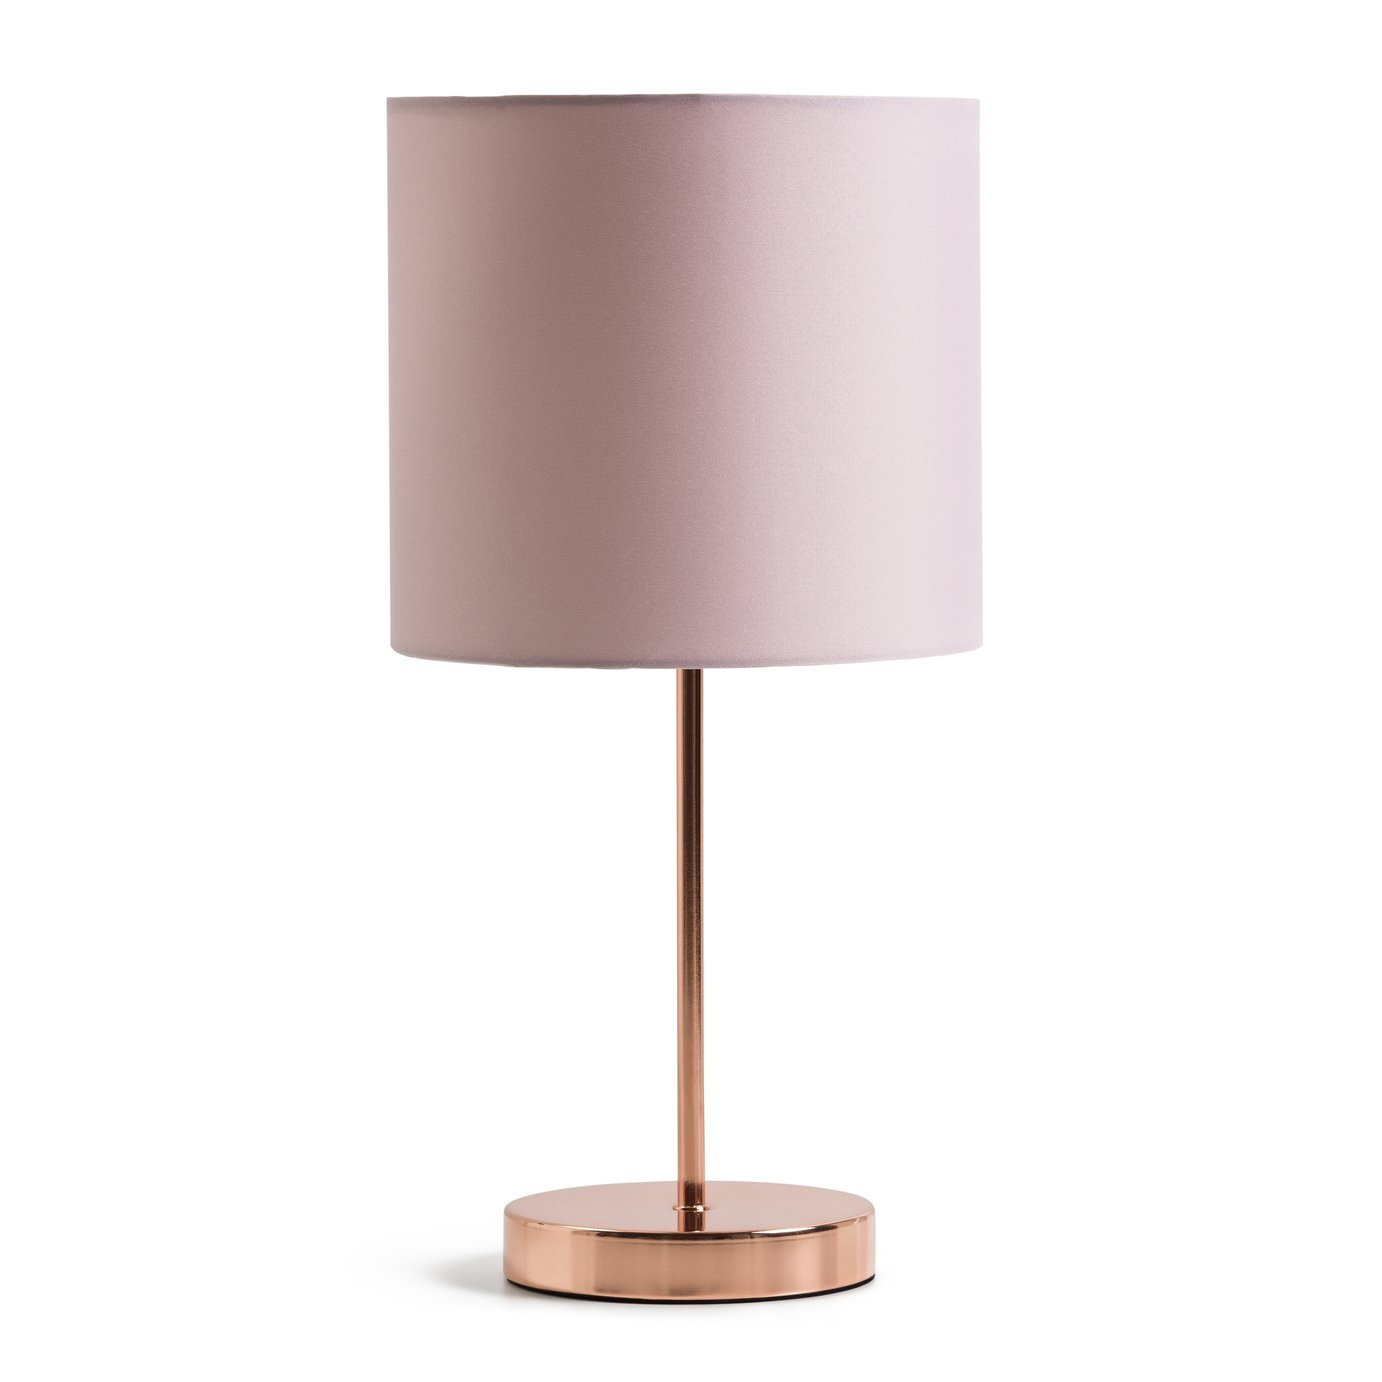 Argos Home Satin Stick Table Lamp - Rose Gold & Blush Pink